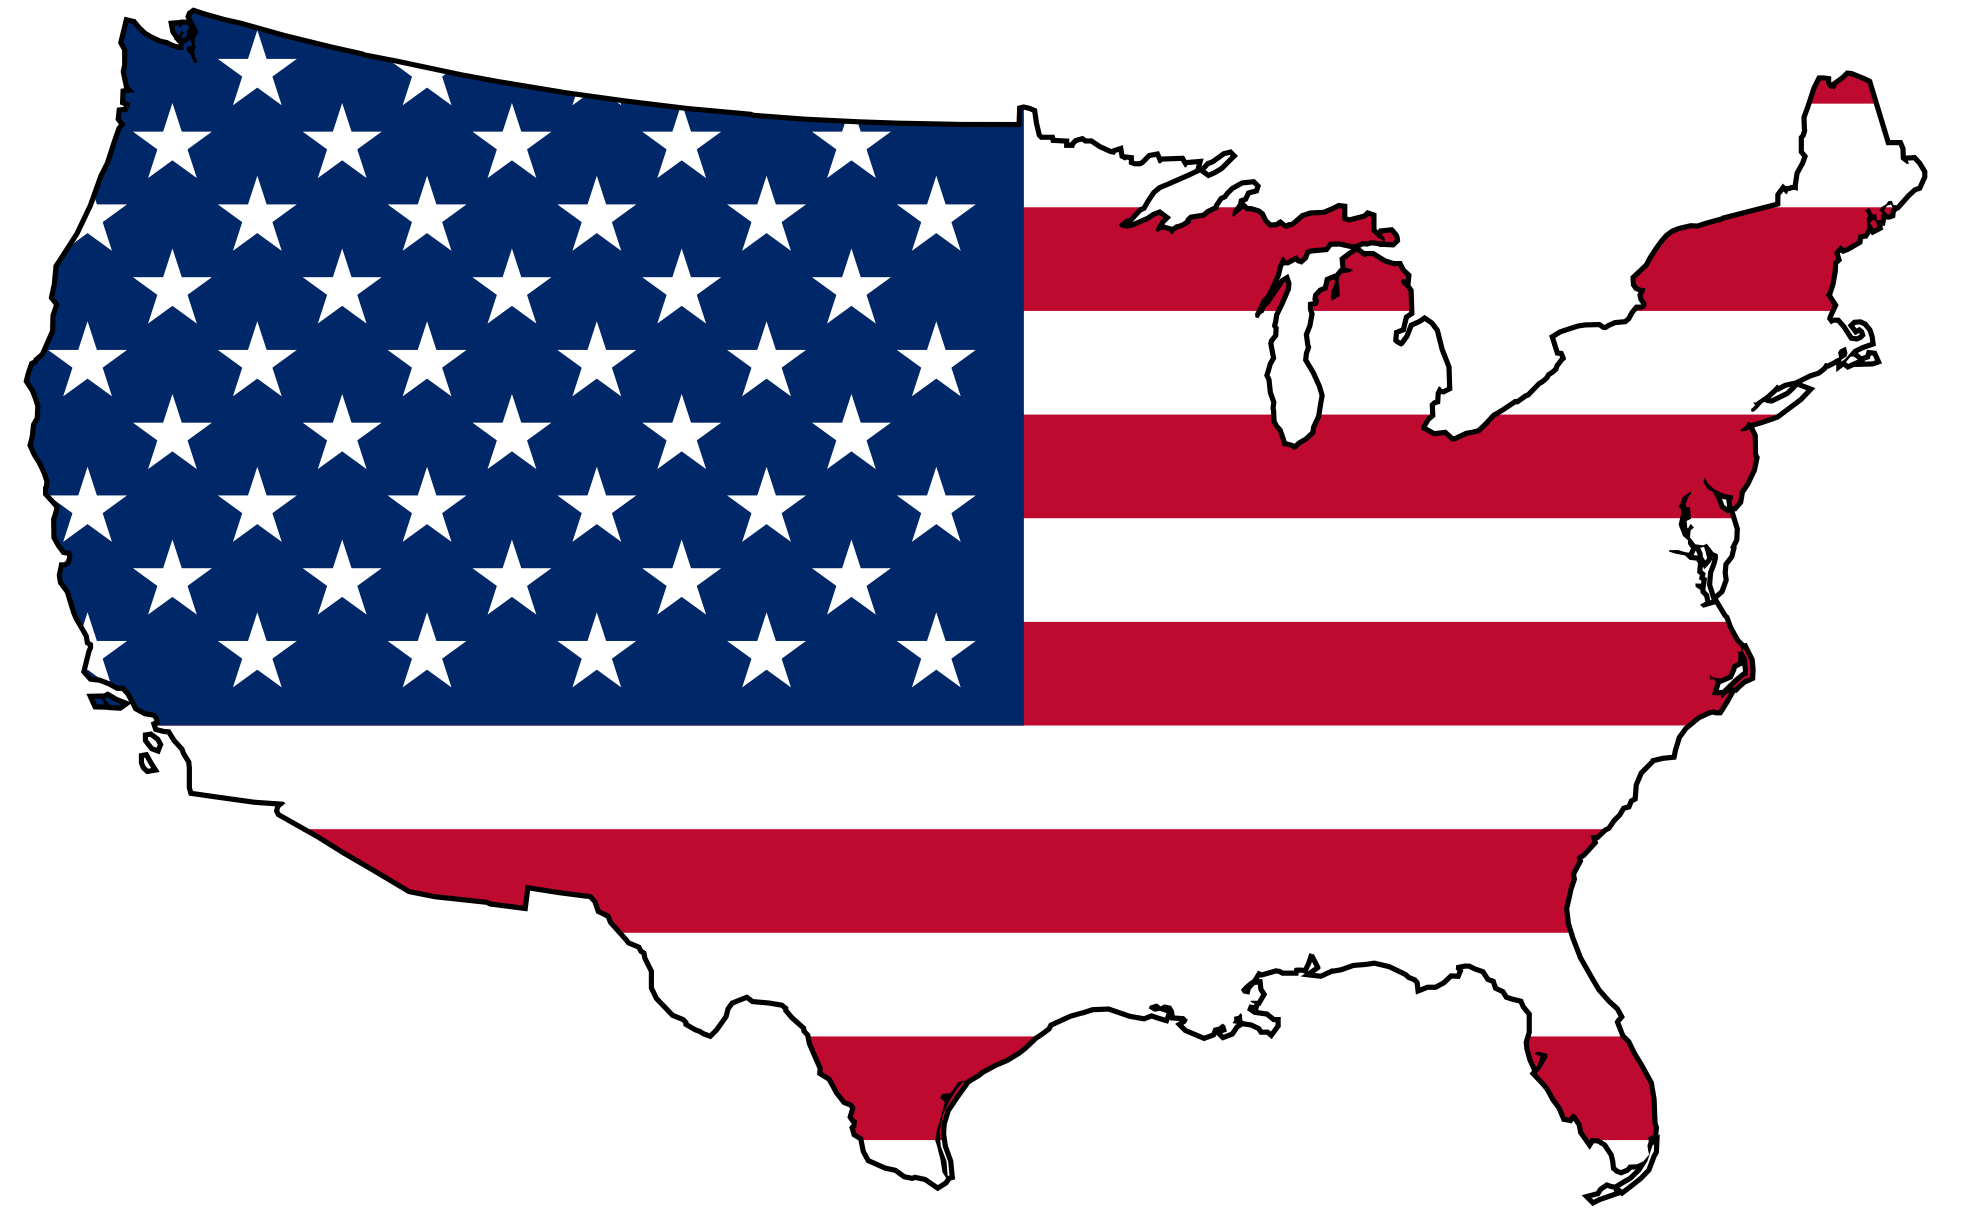 American clipart symbol us. Free pictures of map